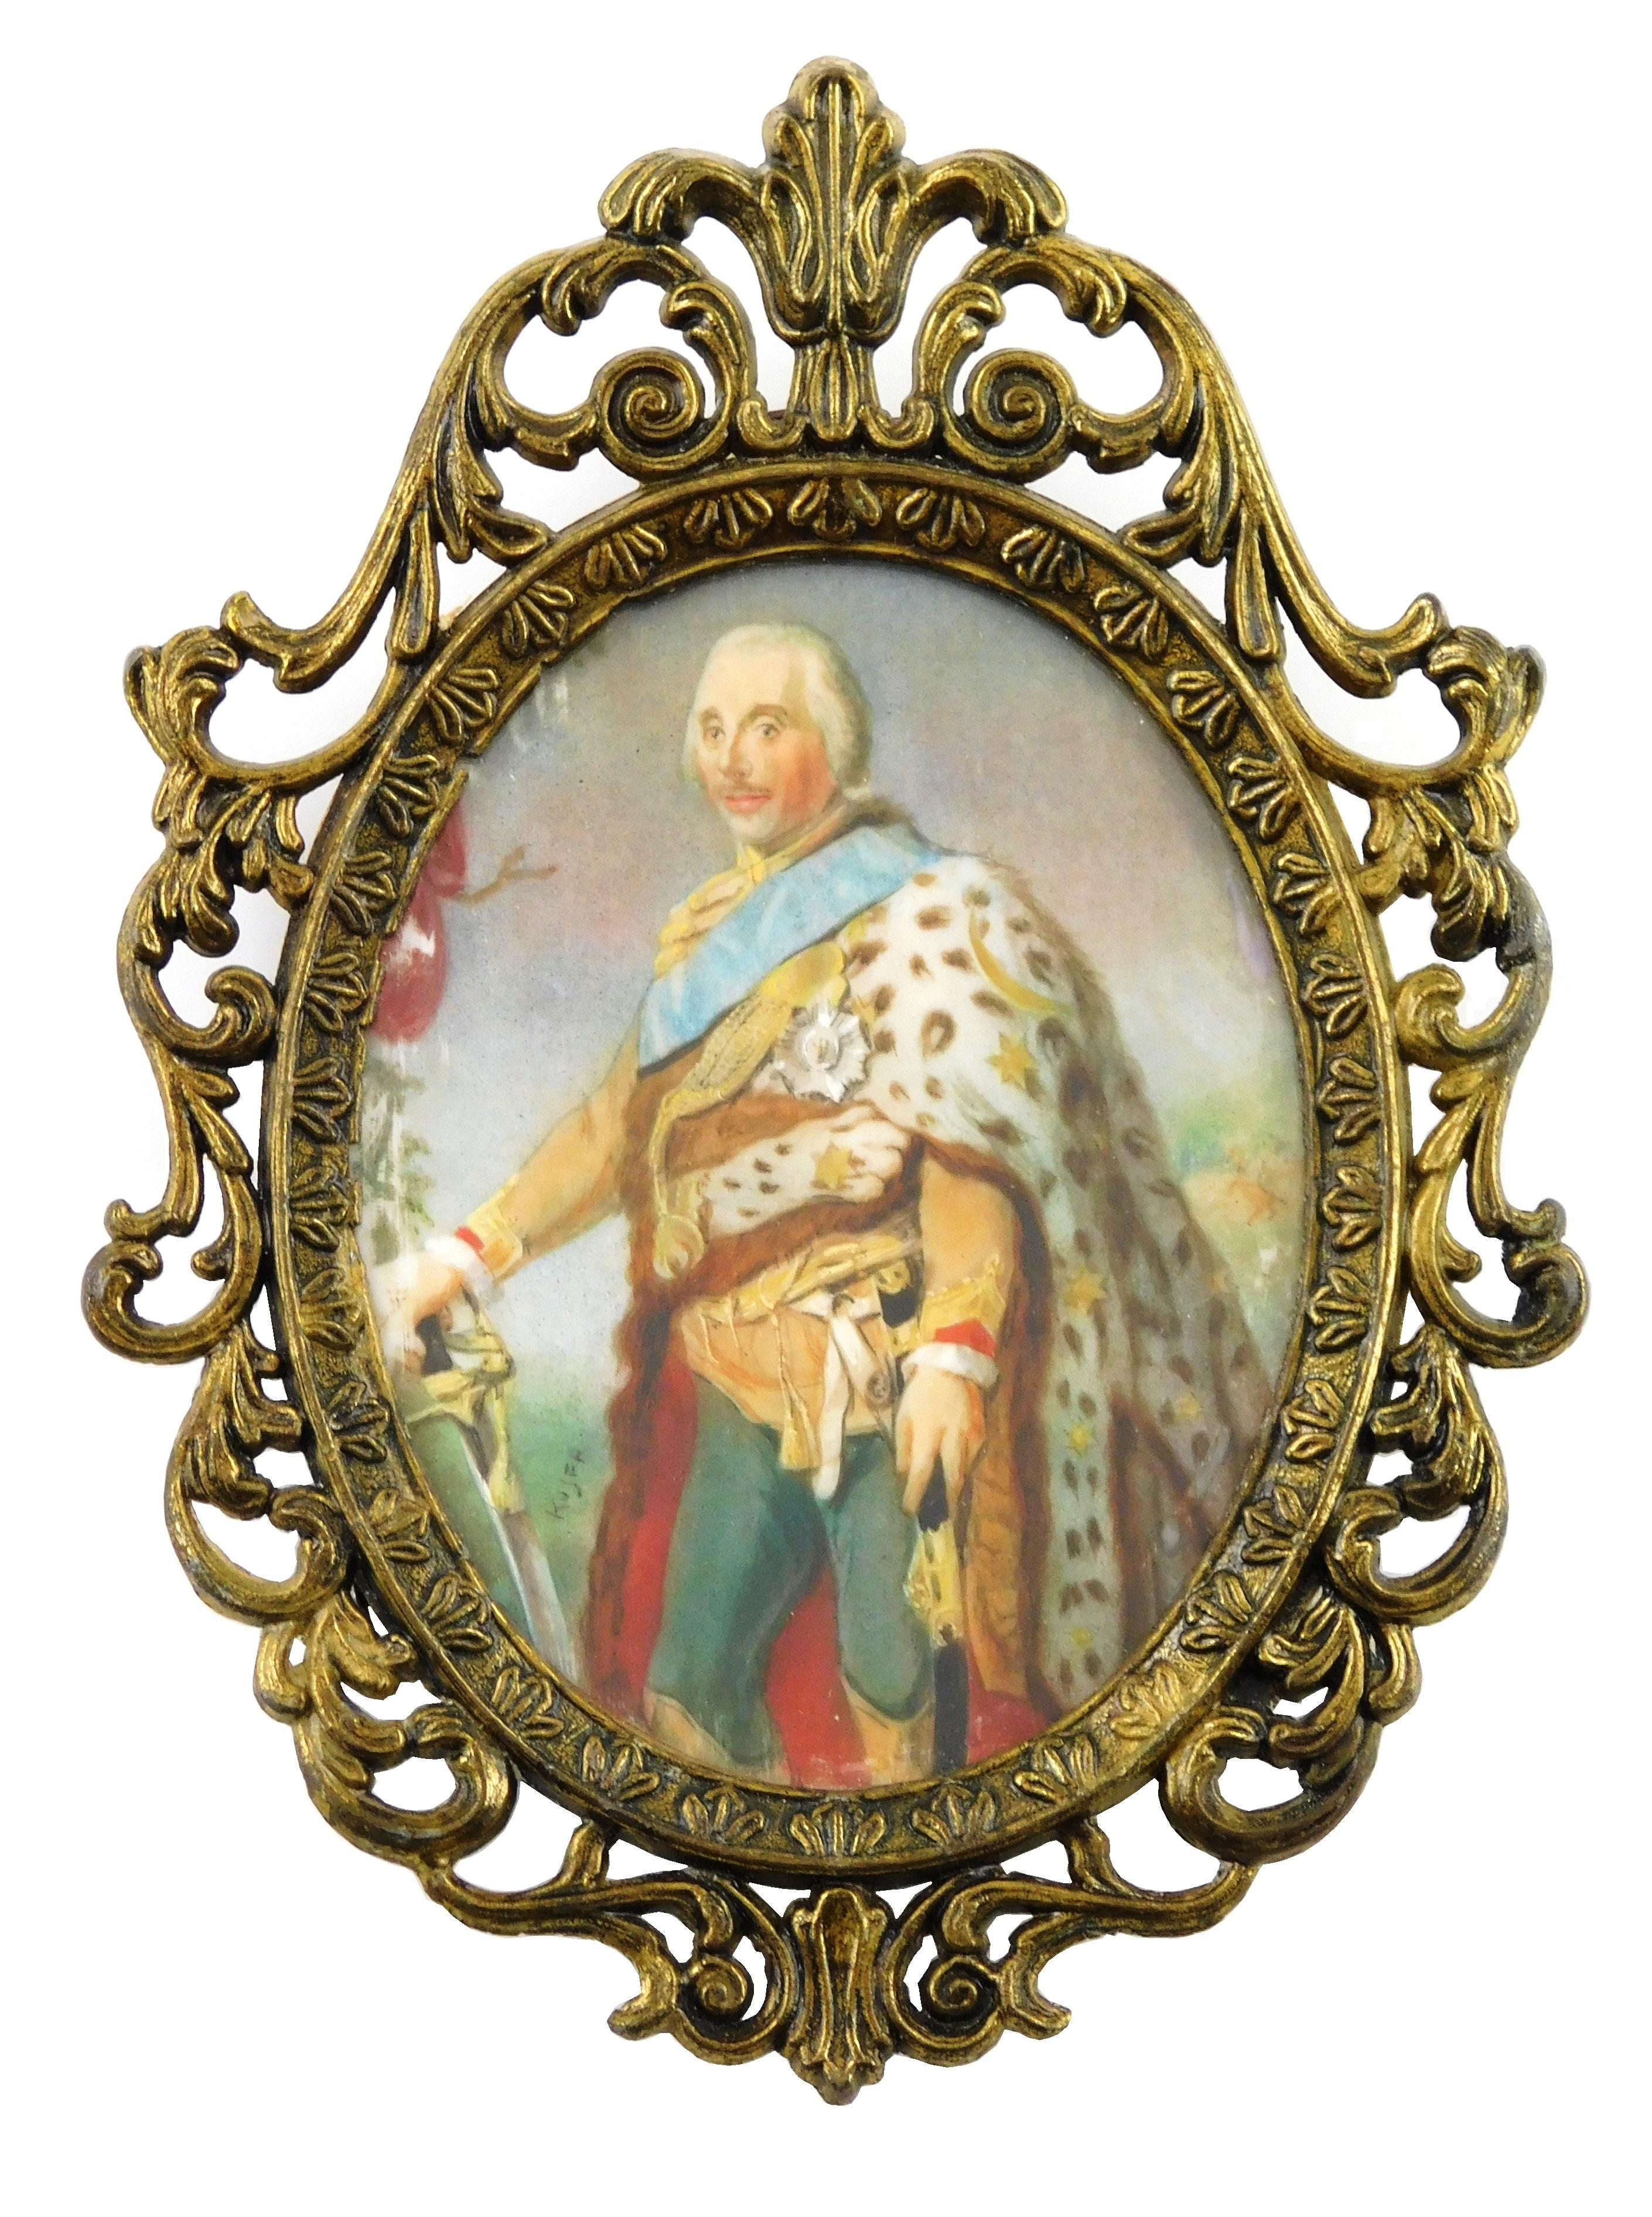 MINIATURE: Military Gentleman, depicts 18th Century English officer with a leopard shin cape, sword, blue sash, medals, and powdered...